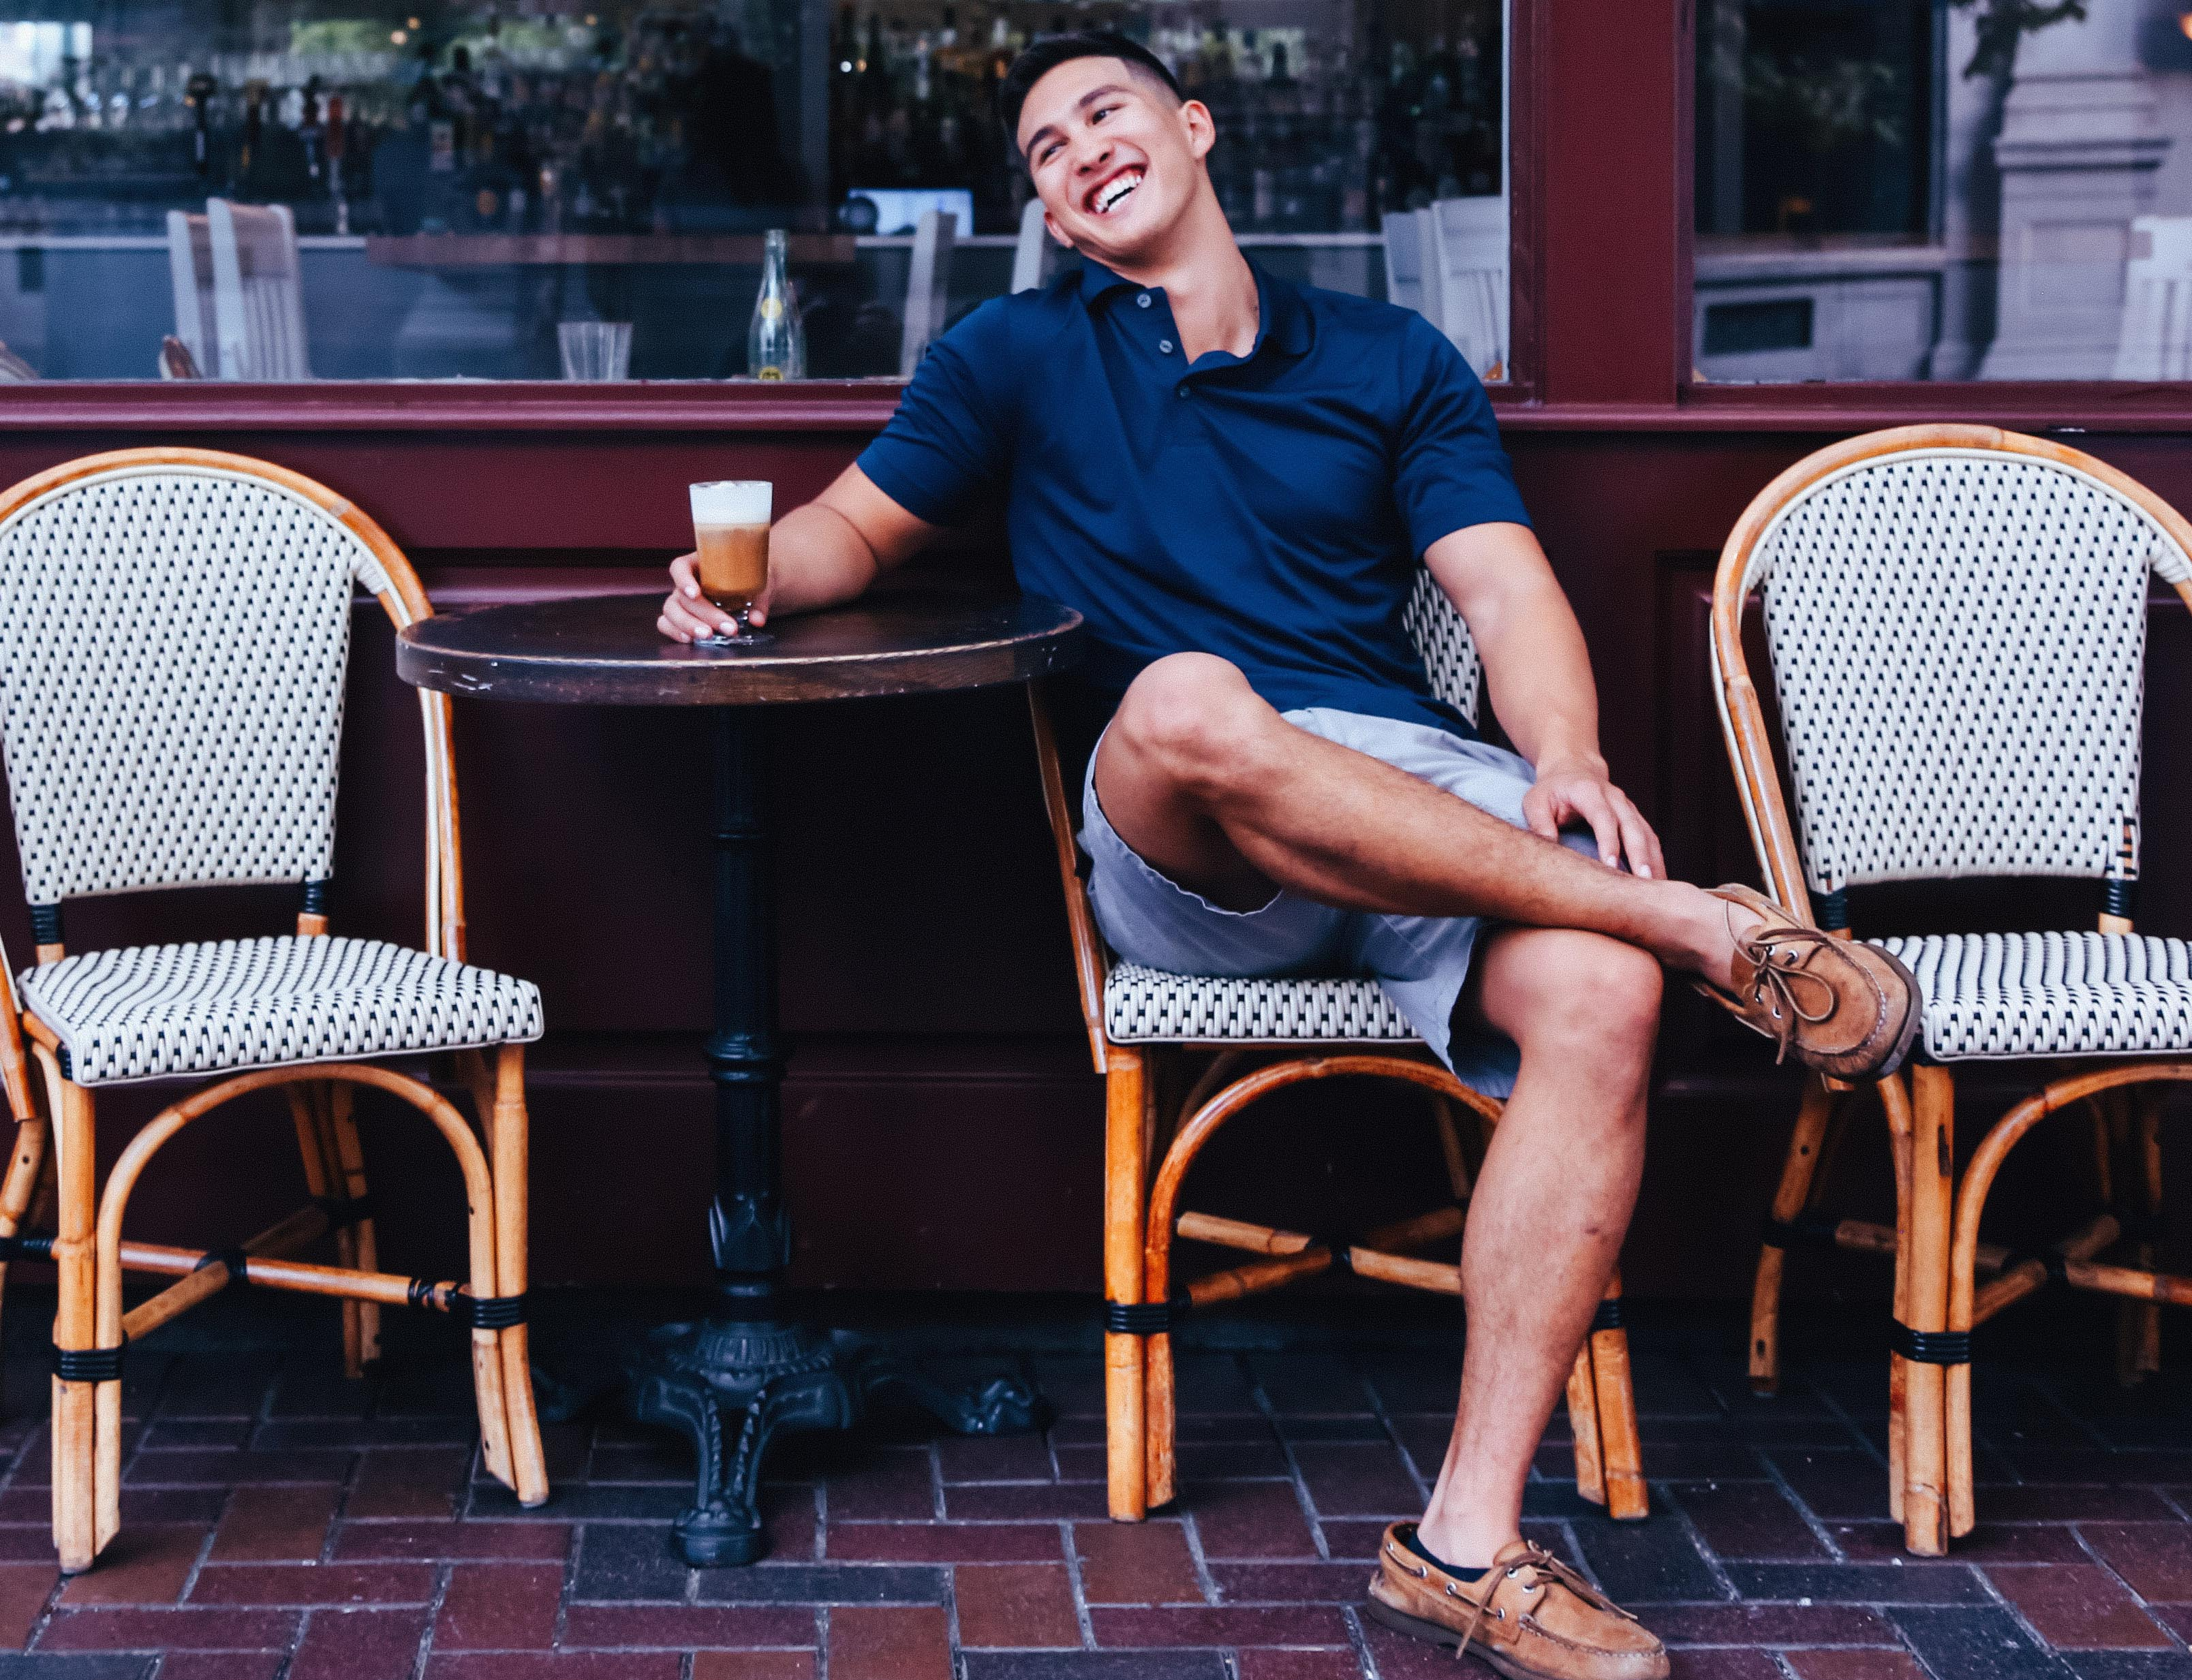 happy man in front of cafe